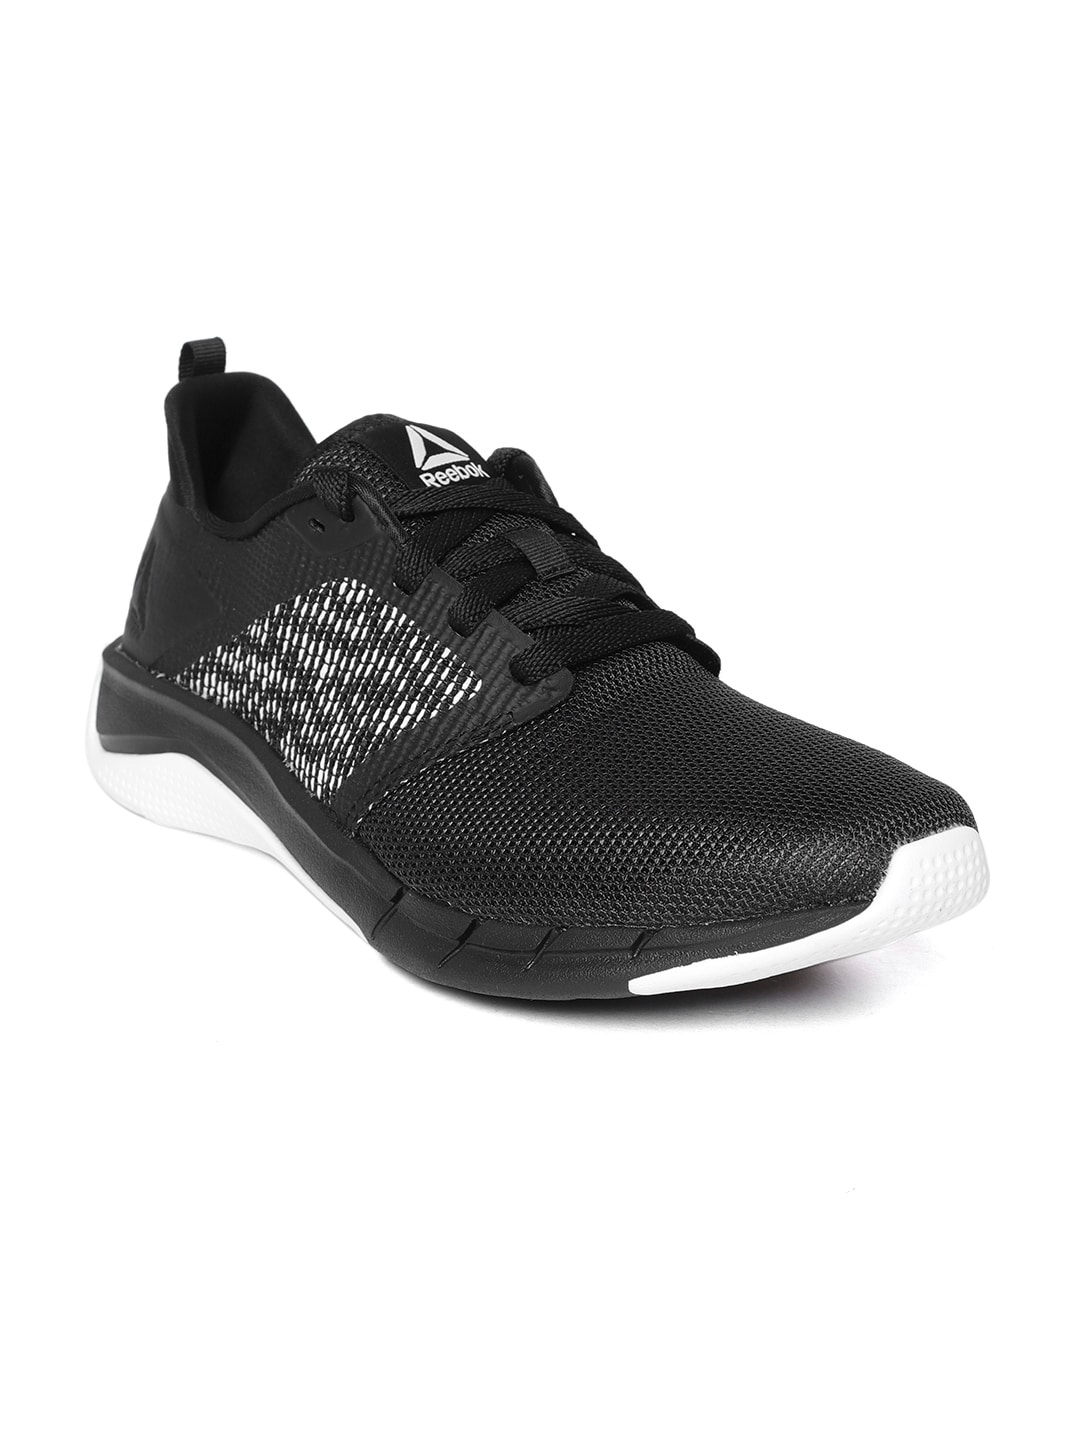 Reebok Shoes For Women - Buy Reebok Shoes For Women online in India 65bc7937e